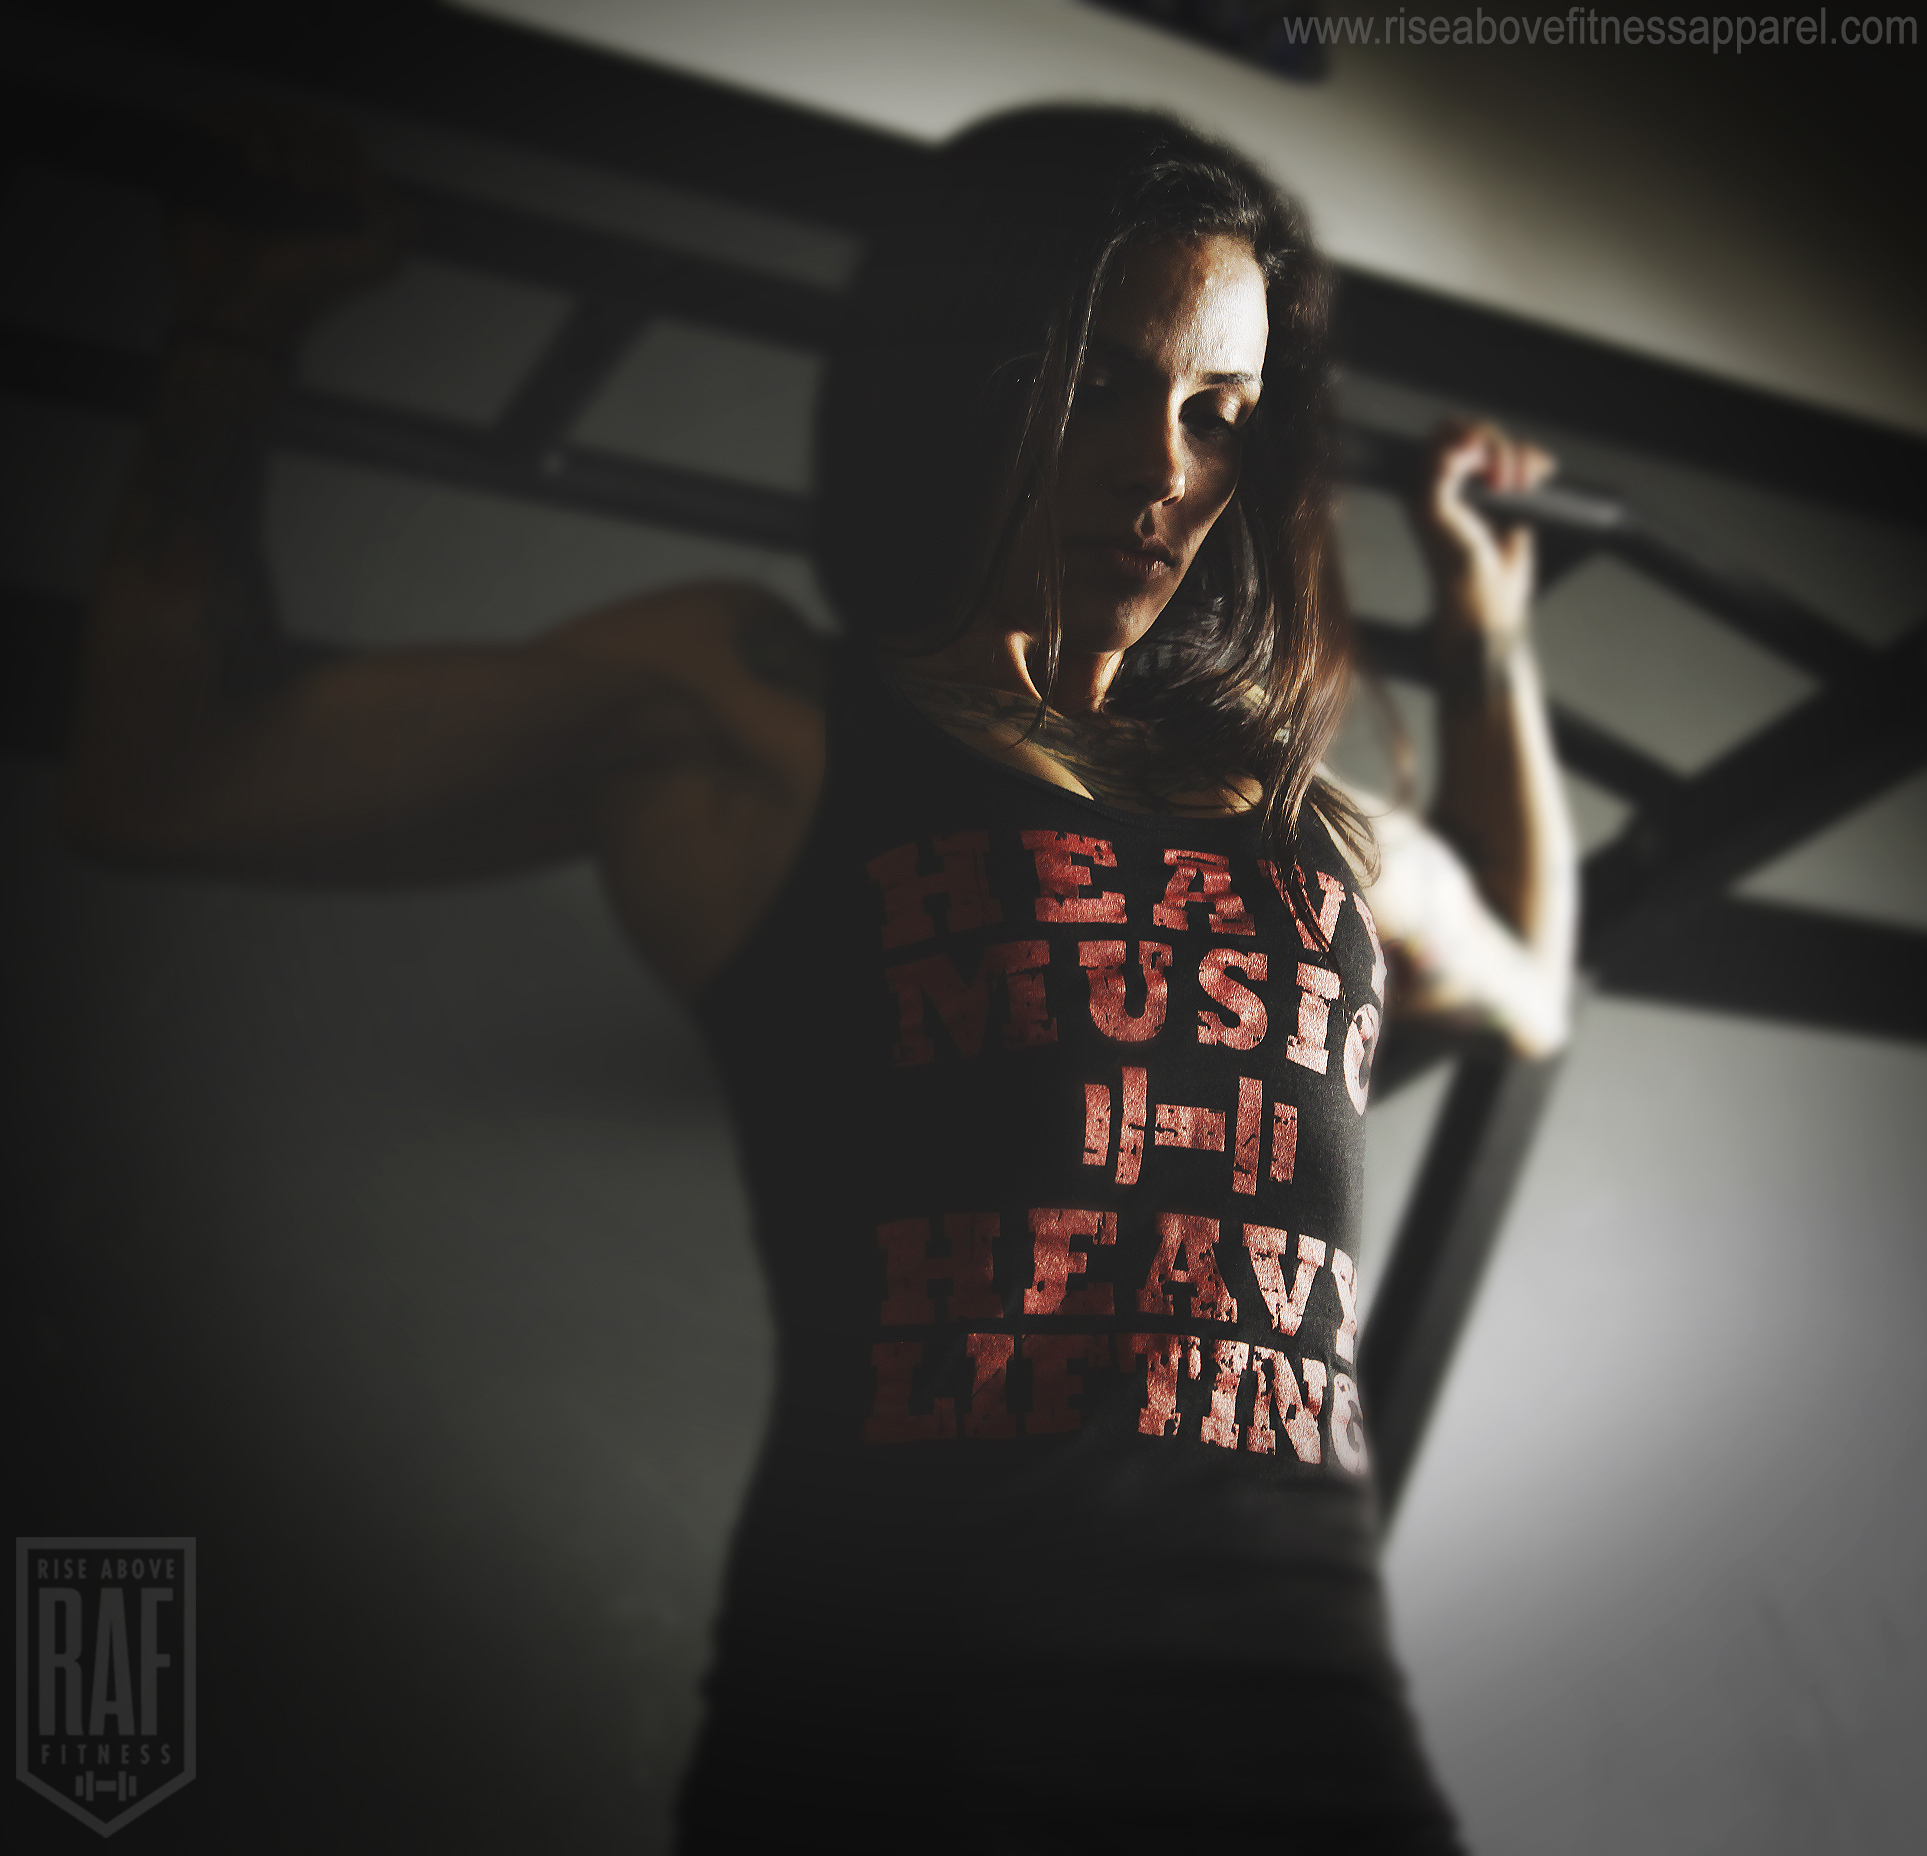 HEAVY MUSIC Women's Racerback (Red on Black)_SHOOT.jpg